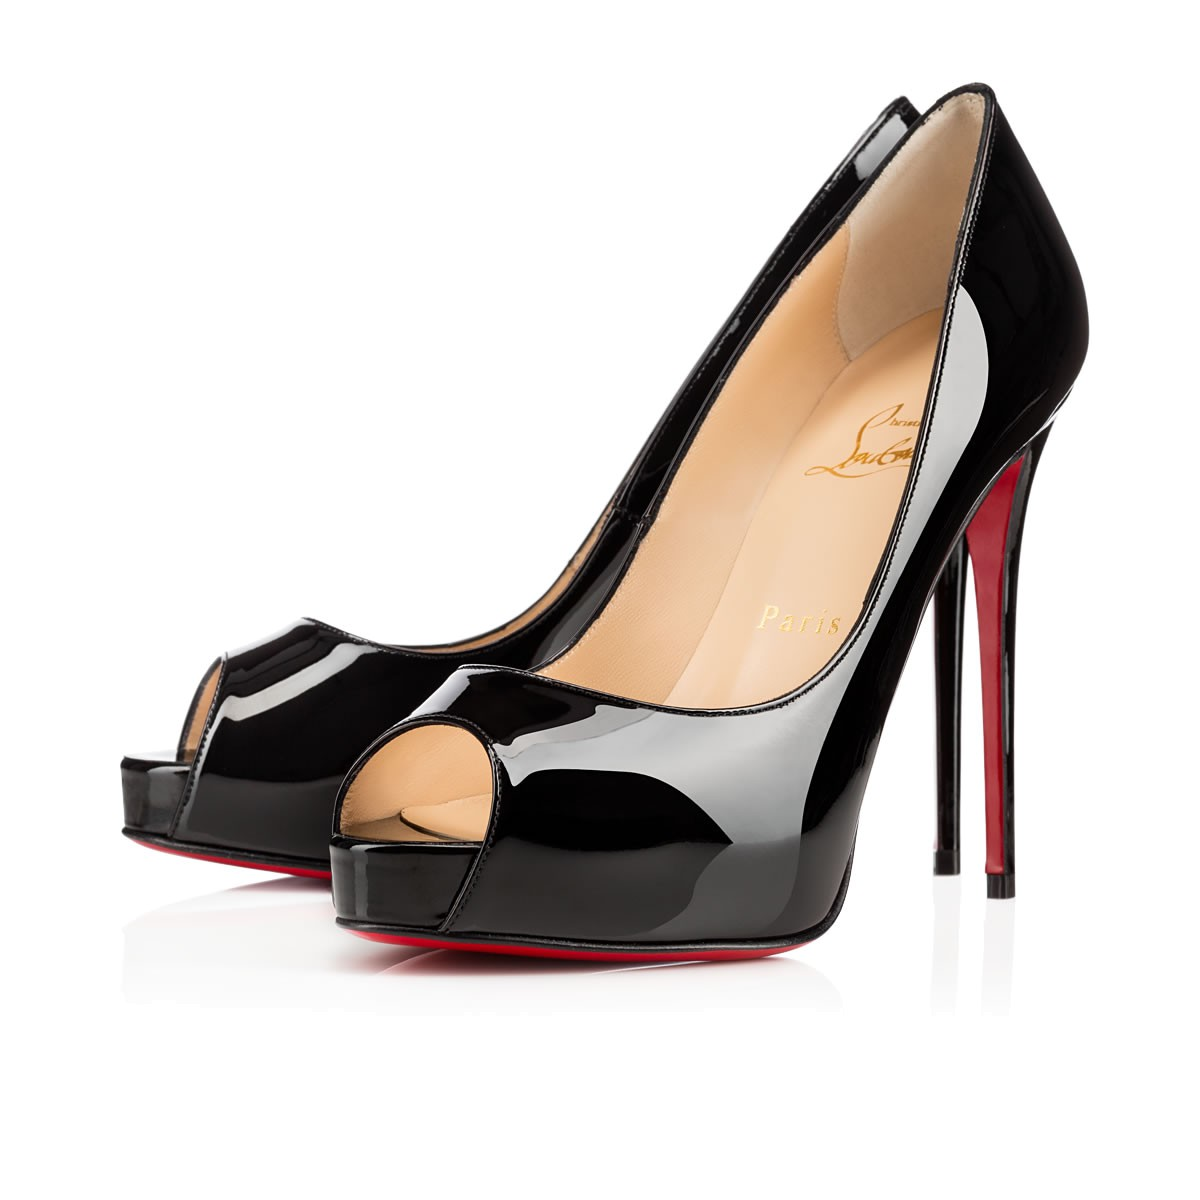 8b2592c606582 New Very Prive 120 Black Patent Leather - Women Shoes - Christian Louboutin